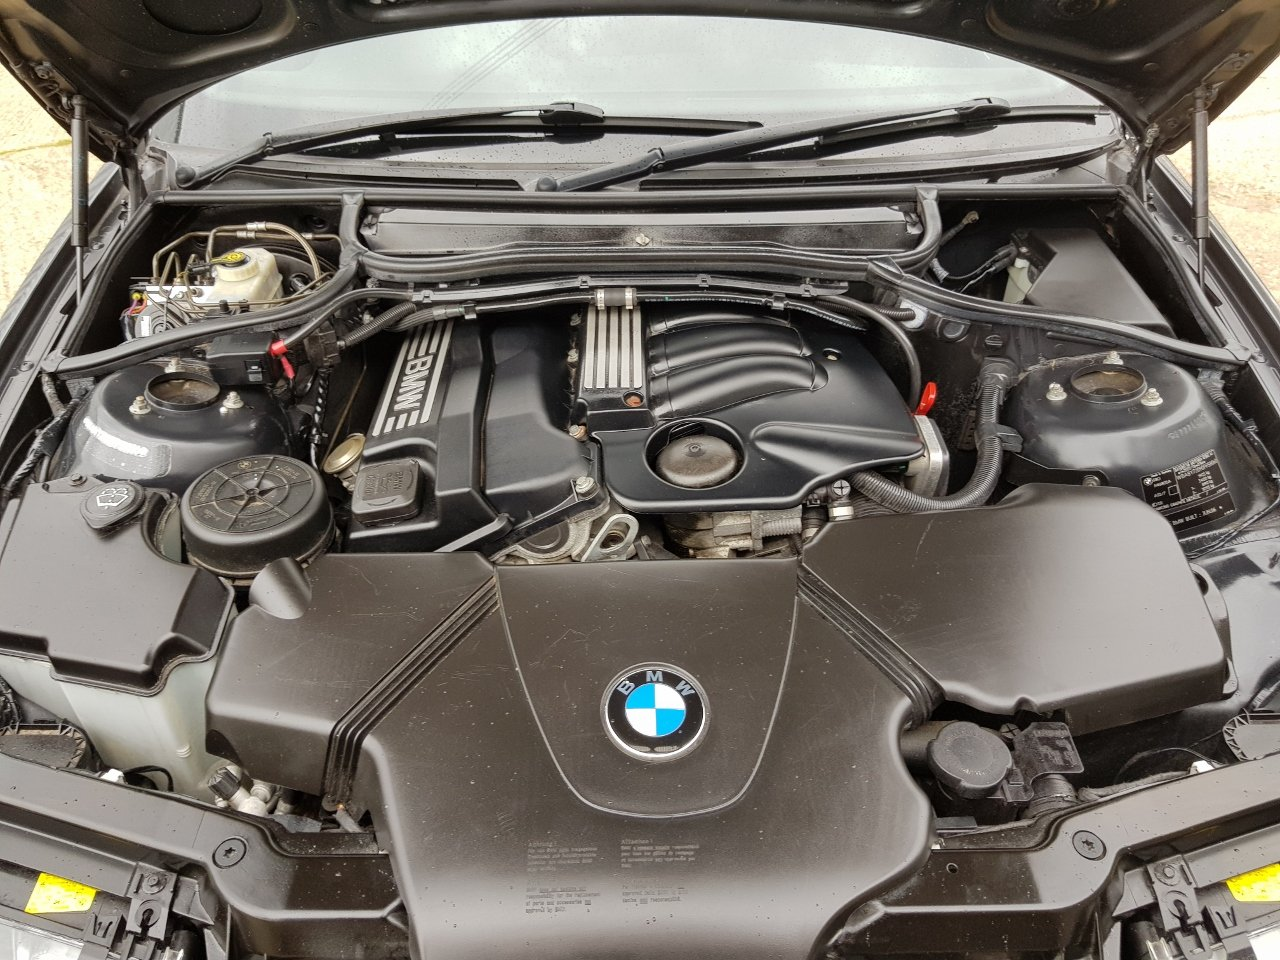 2006 Stunning E46 318(2.0) M Sport Convertible -Only 38,000 Miles For Sale (picture 6 of 6)